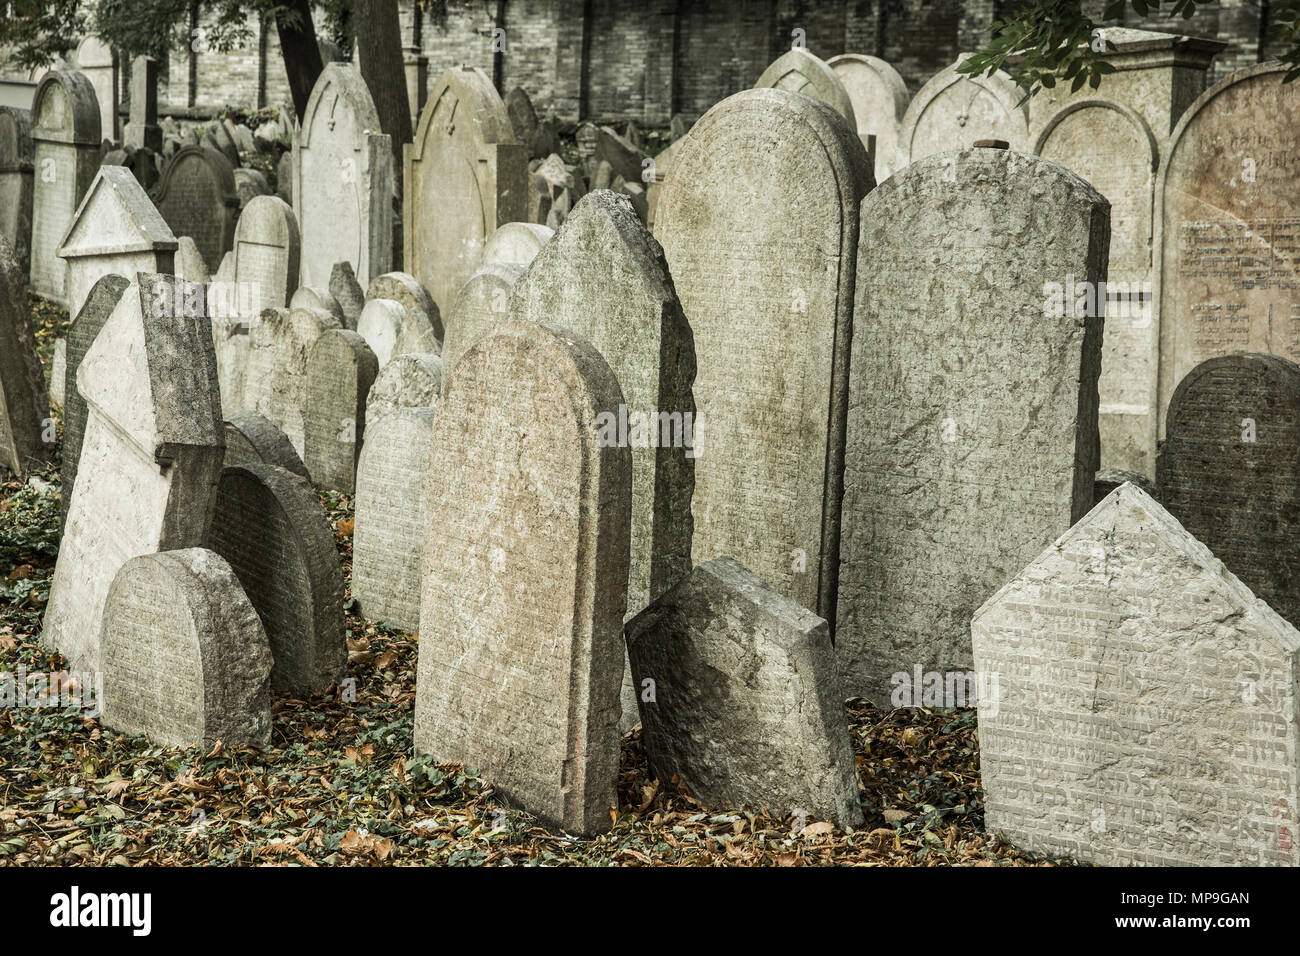 Old abandoned Jewish cemetery. Historical, halloween, sightseeing concept. - Stock Image